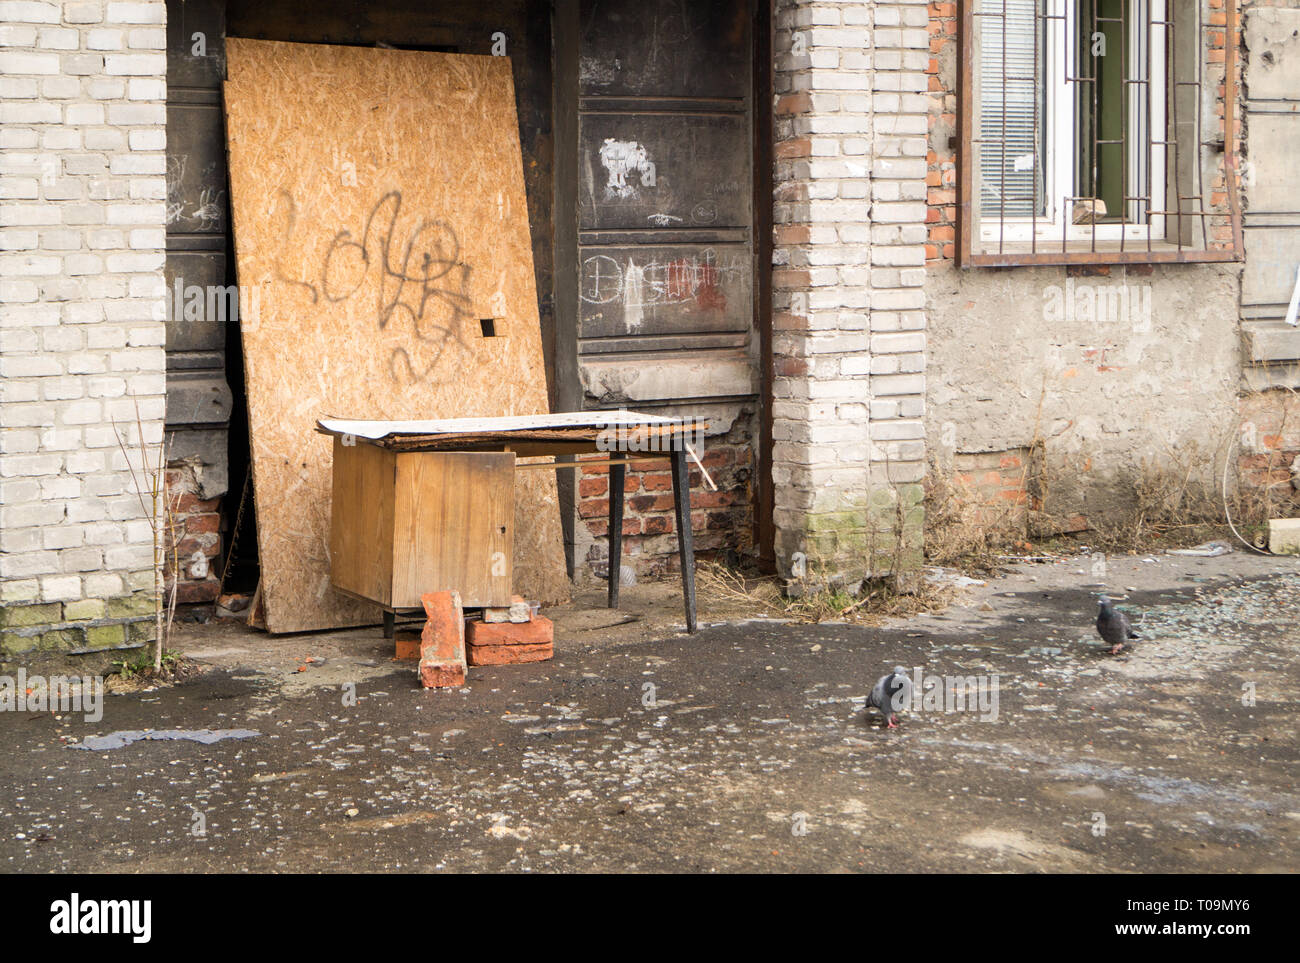 Old tenement house - Stock Image